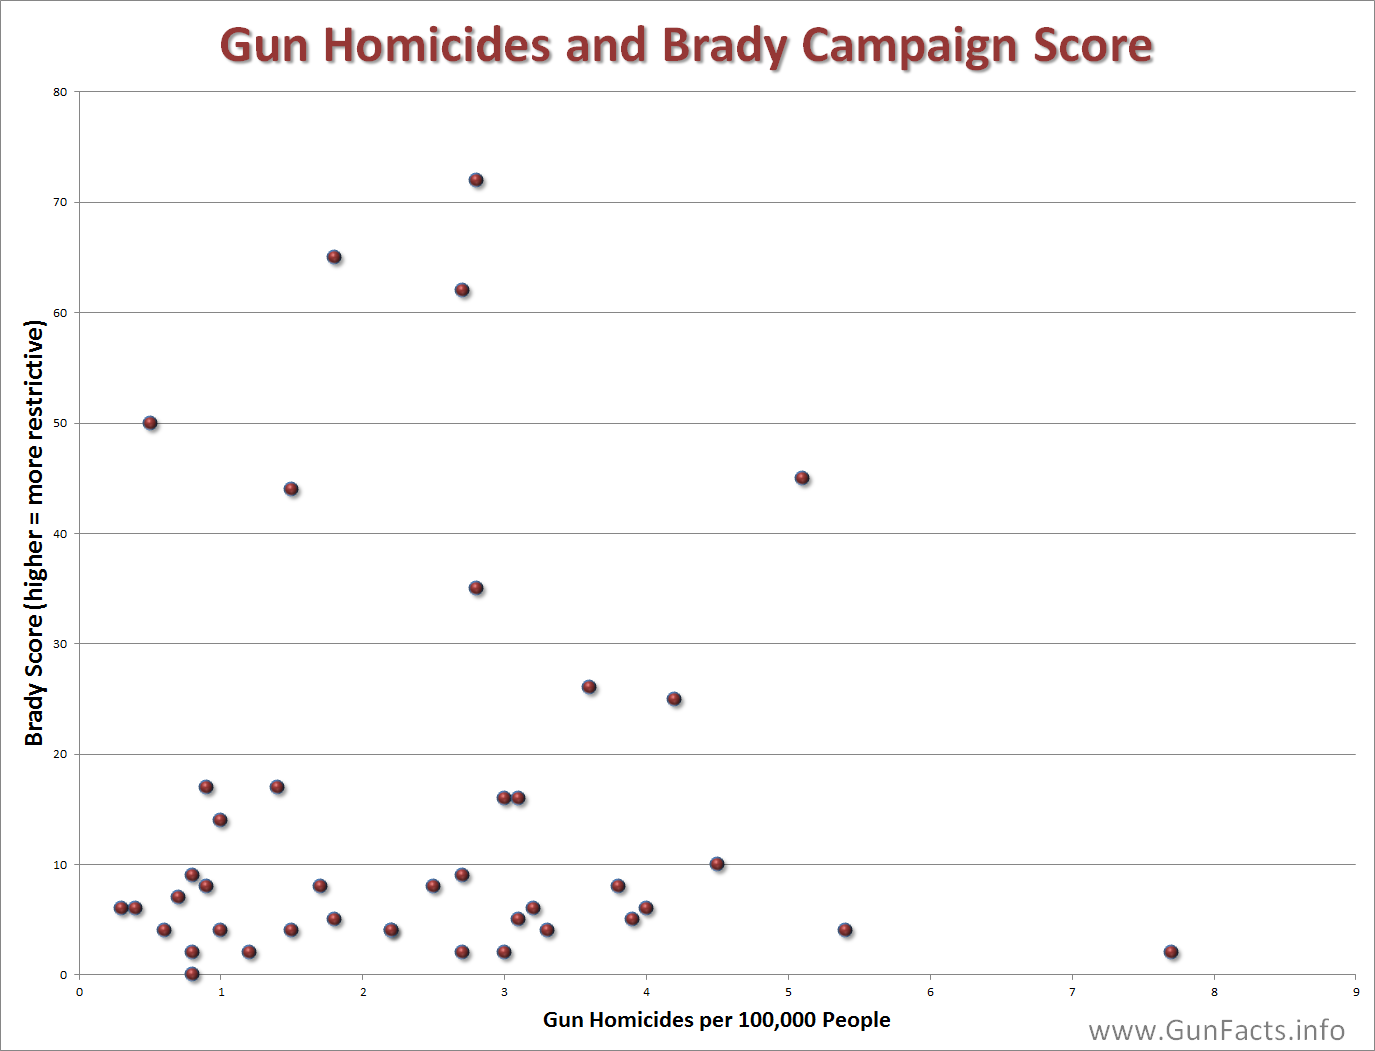 gun facts assorted gun control policy myths investigated brady campaign state scorecard vs firearm homicides